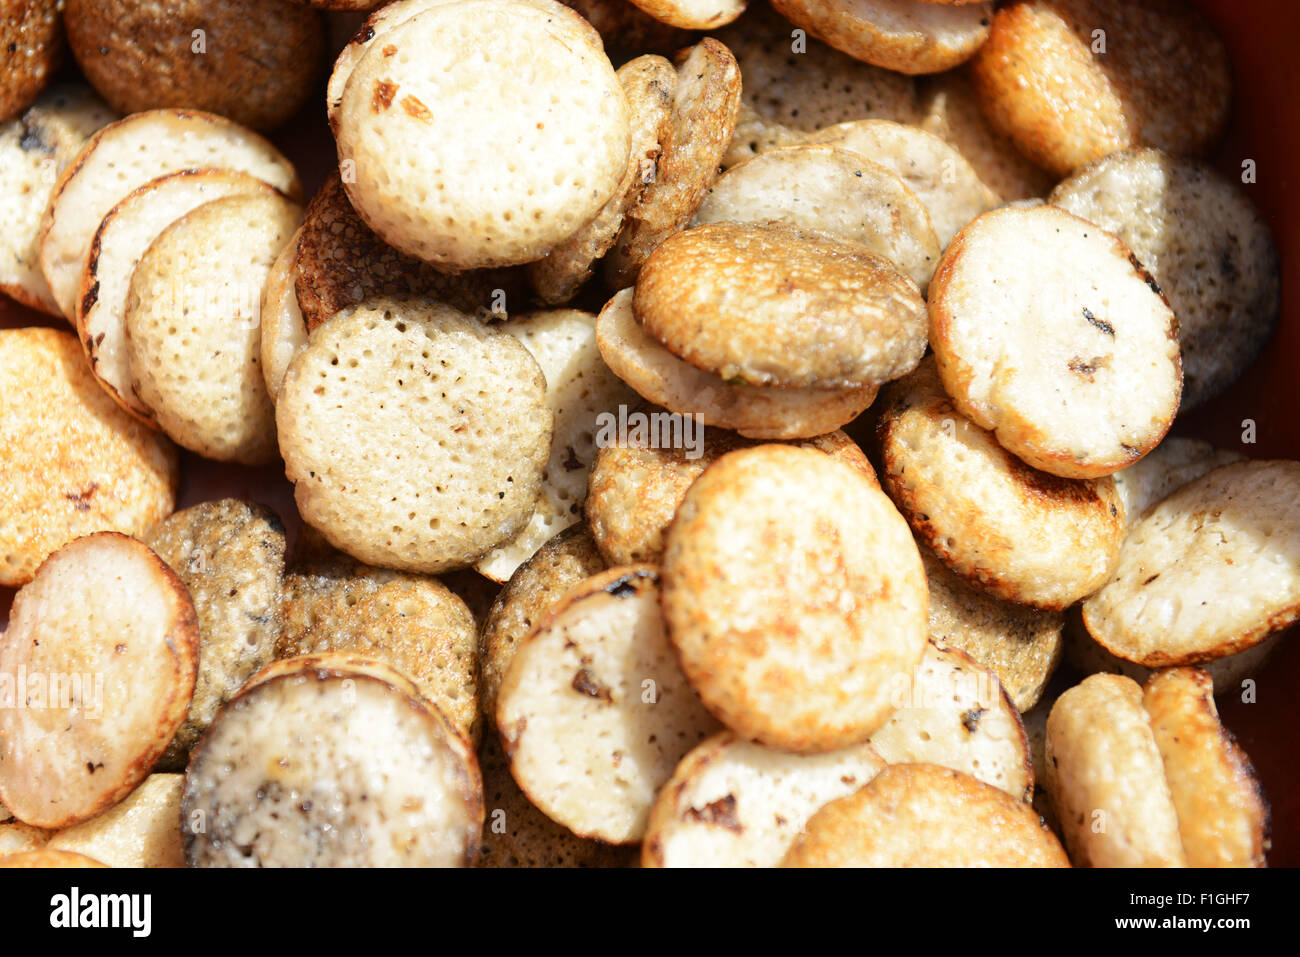 Mofo Gasy is a traditional Malagasy savory rice cake. - Stock Image